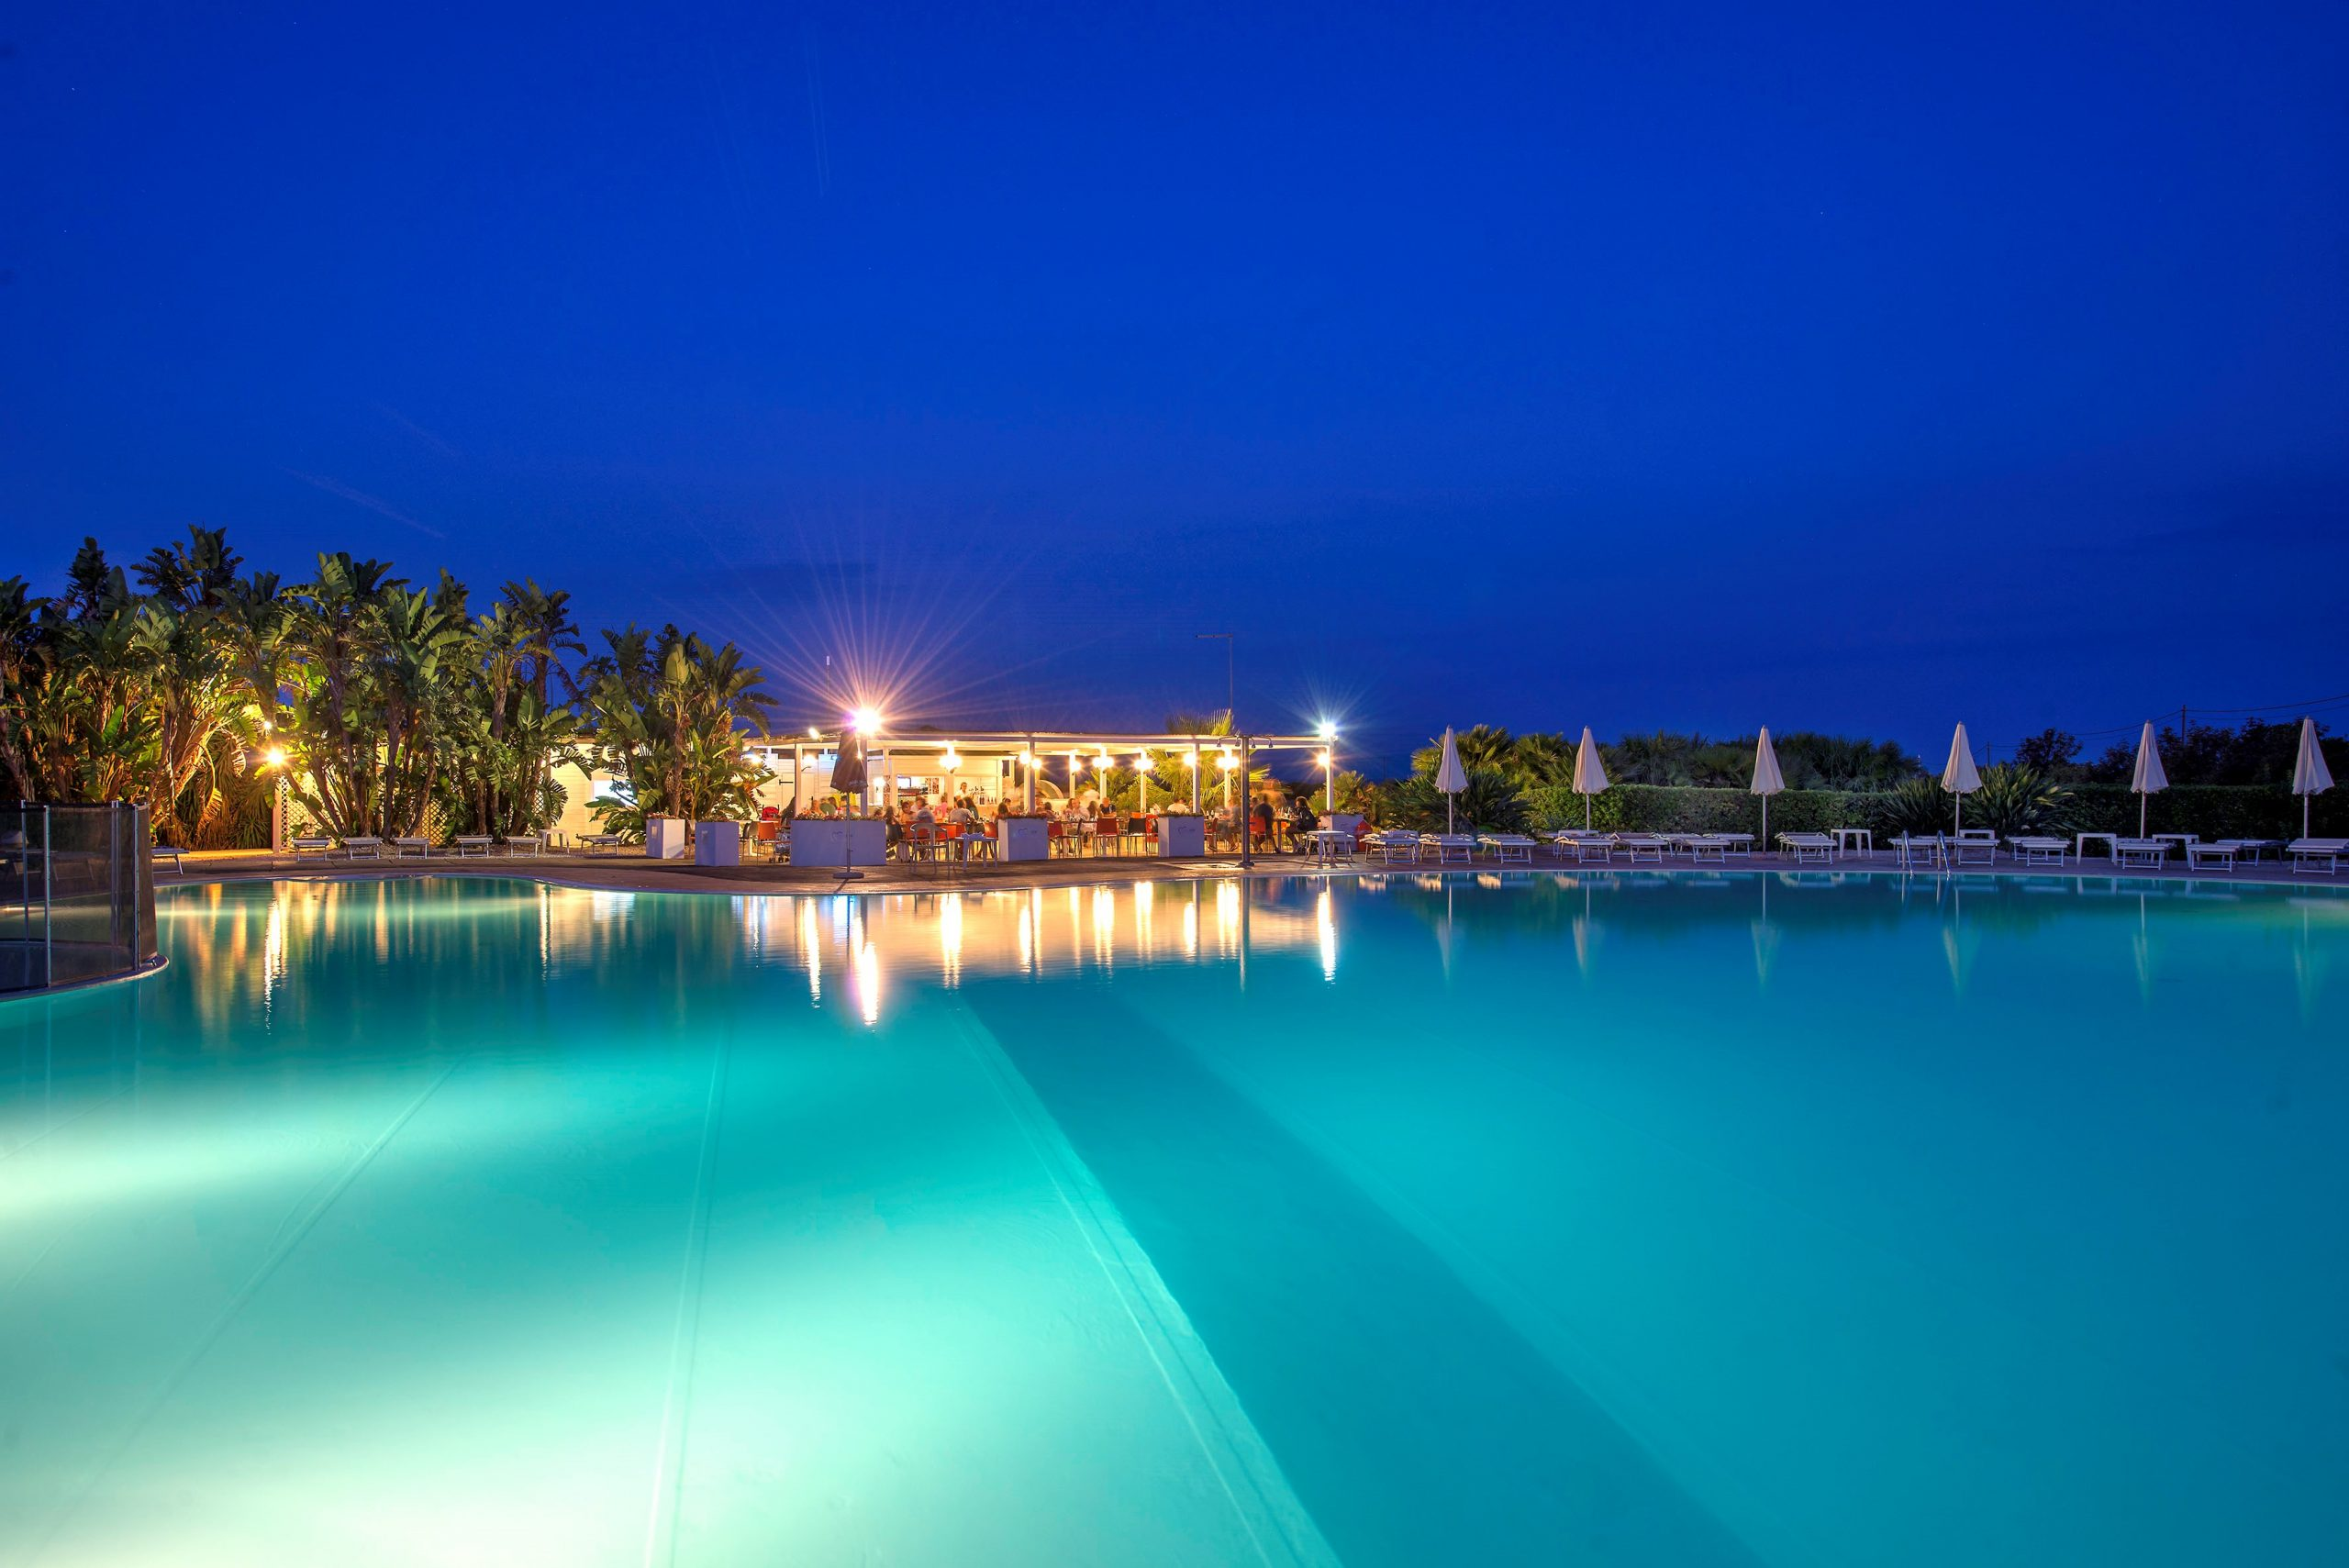 Event Beach Resort Sicily - Pool